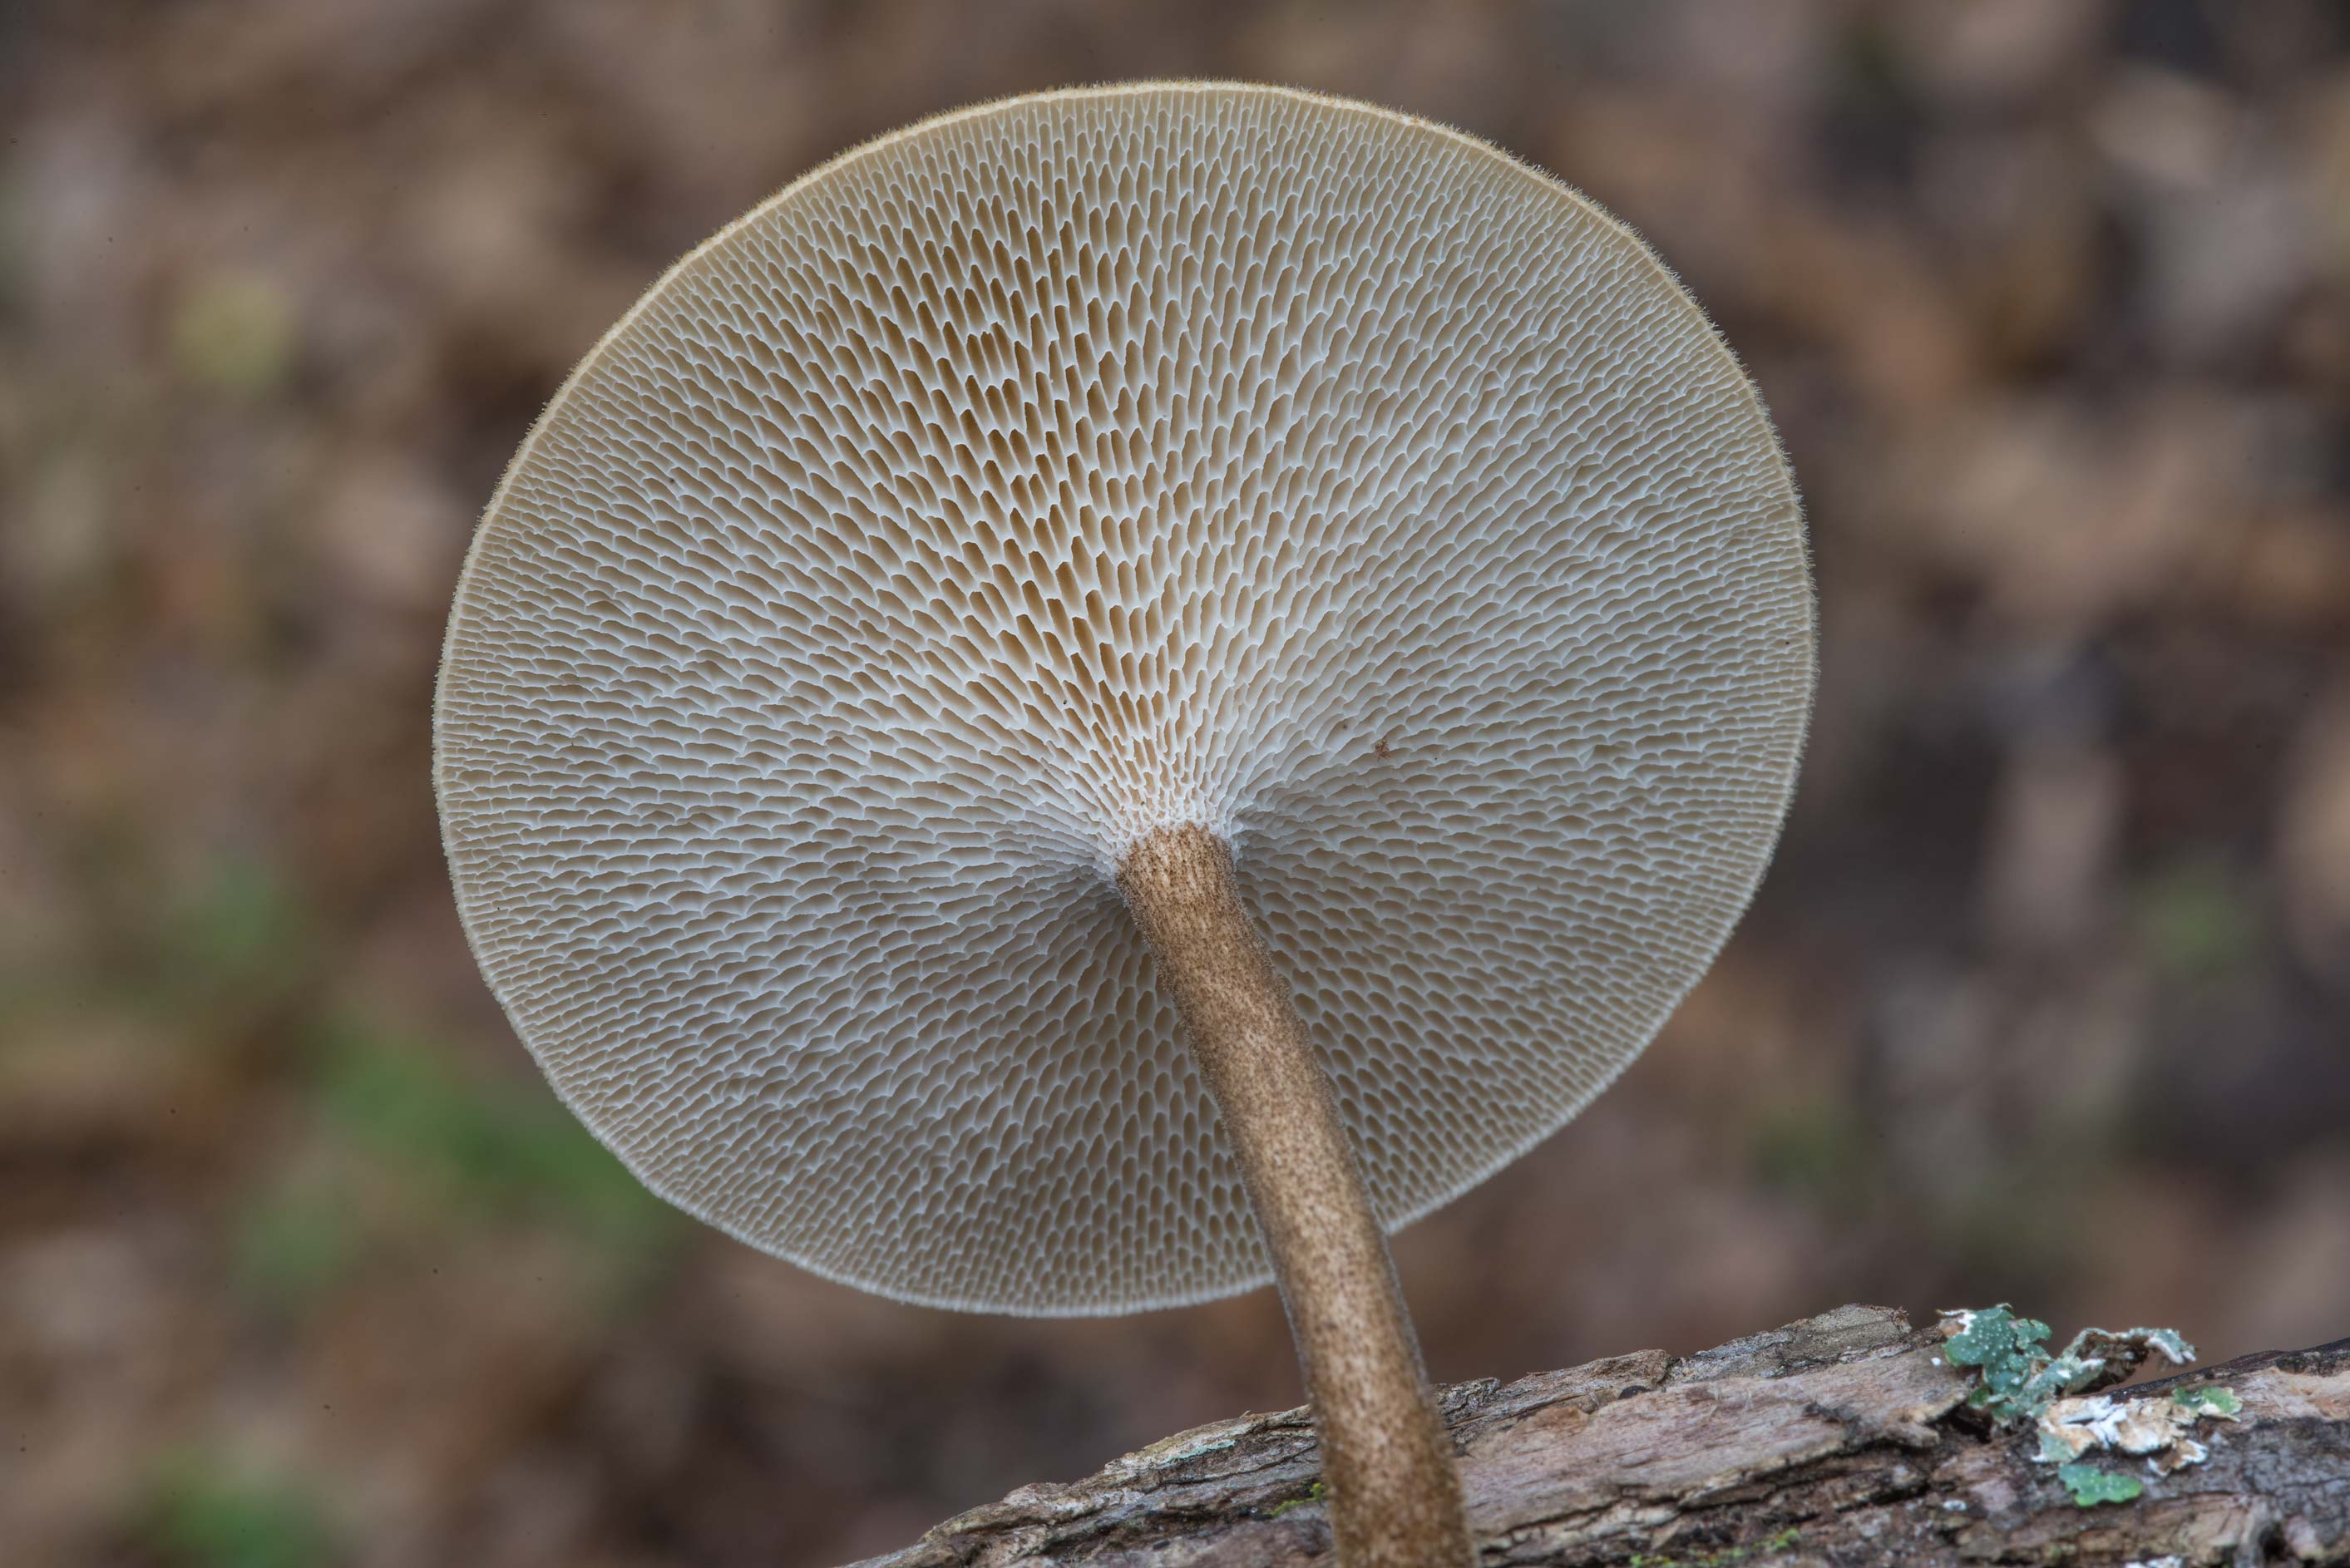 Gills of Polyporus arcularius (Lentinus...Nature Trail. College Station, Texas